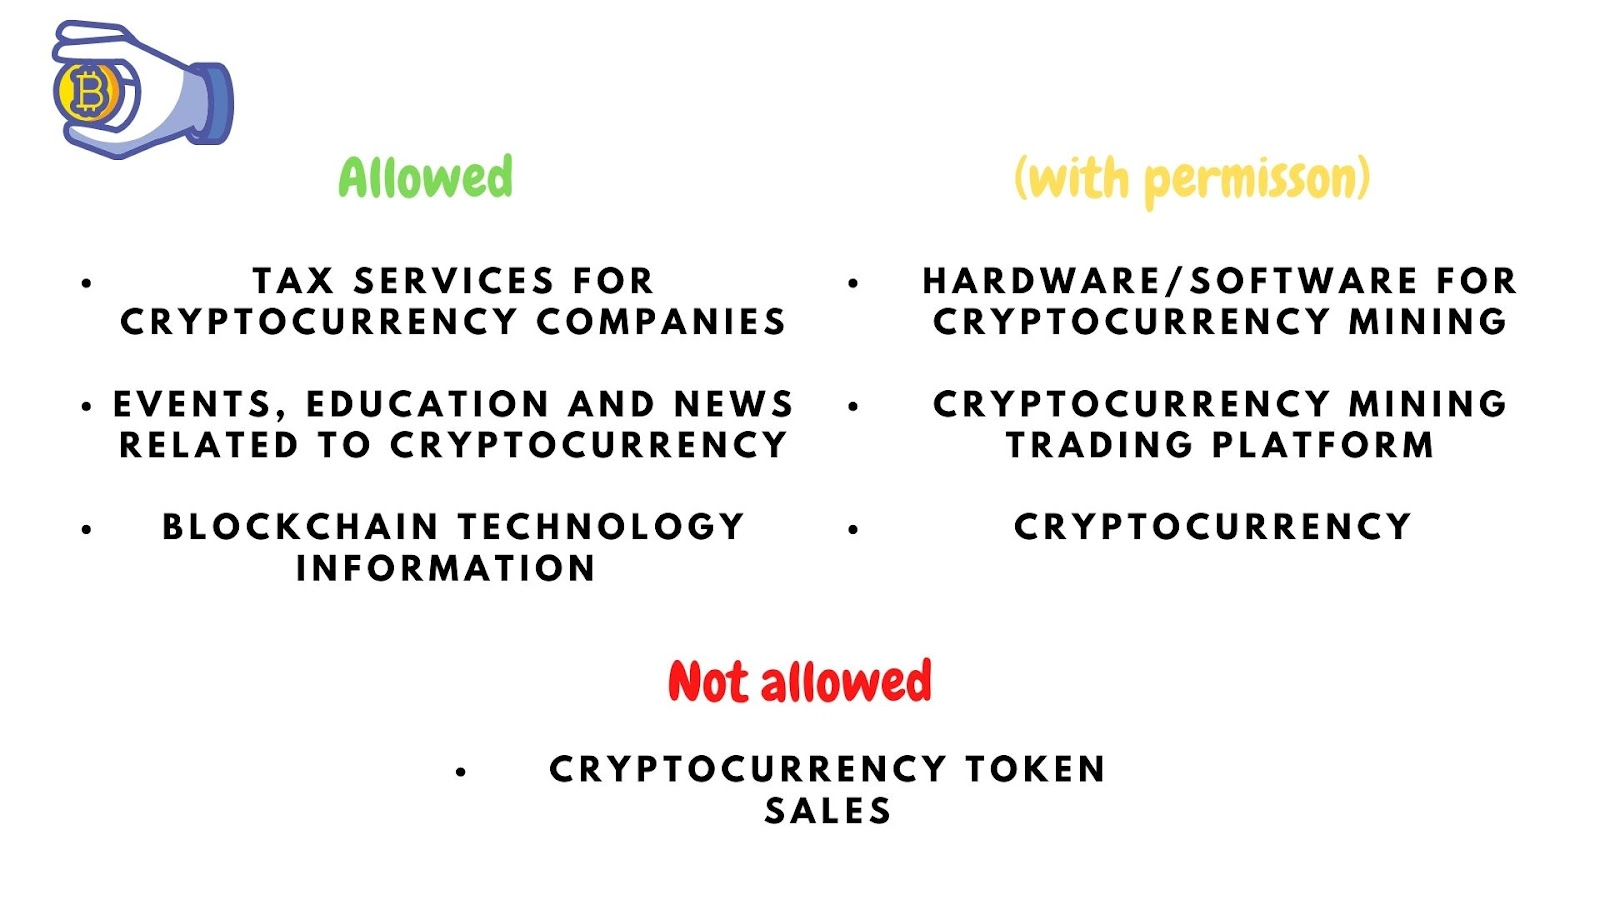 Image showing what is allowed and not allowed and what can be done with the correct permission in cryptocurrency policies.